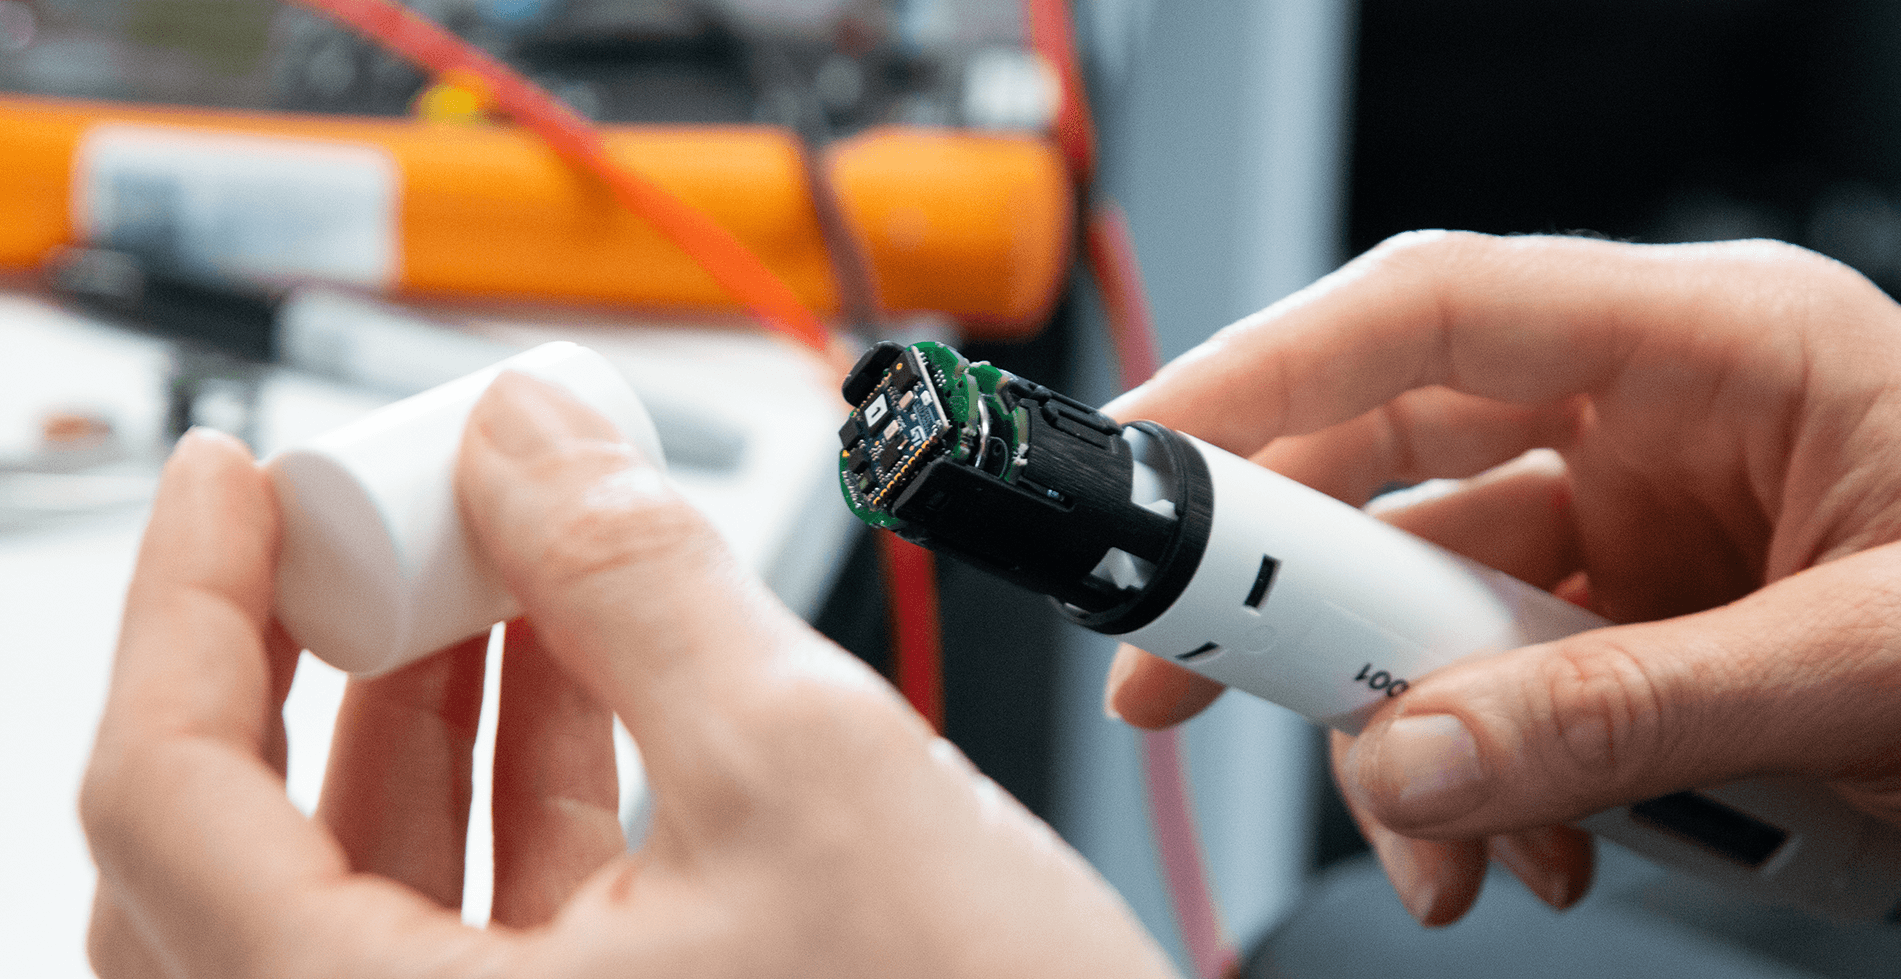 Hands developing a connected auto injector pen device